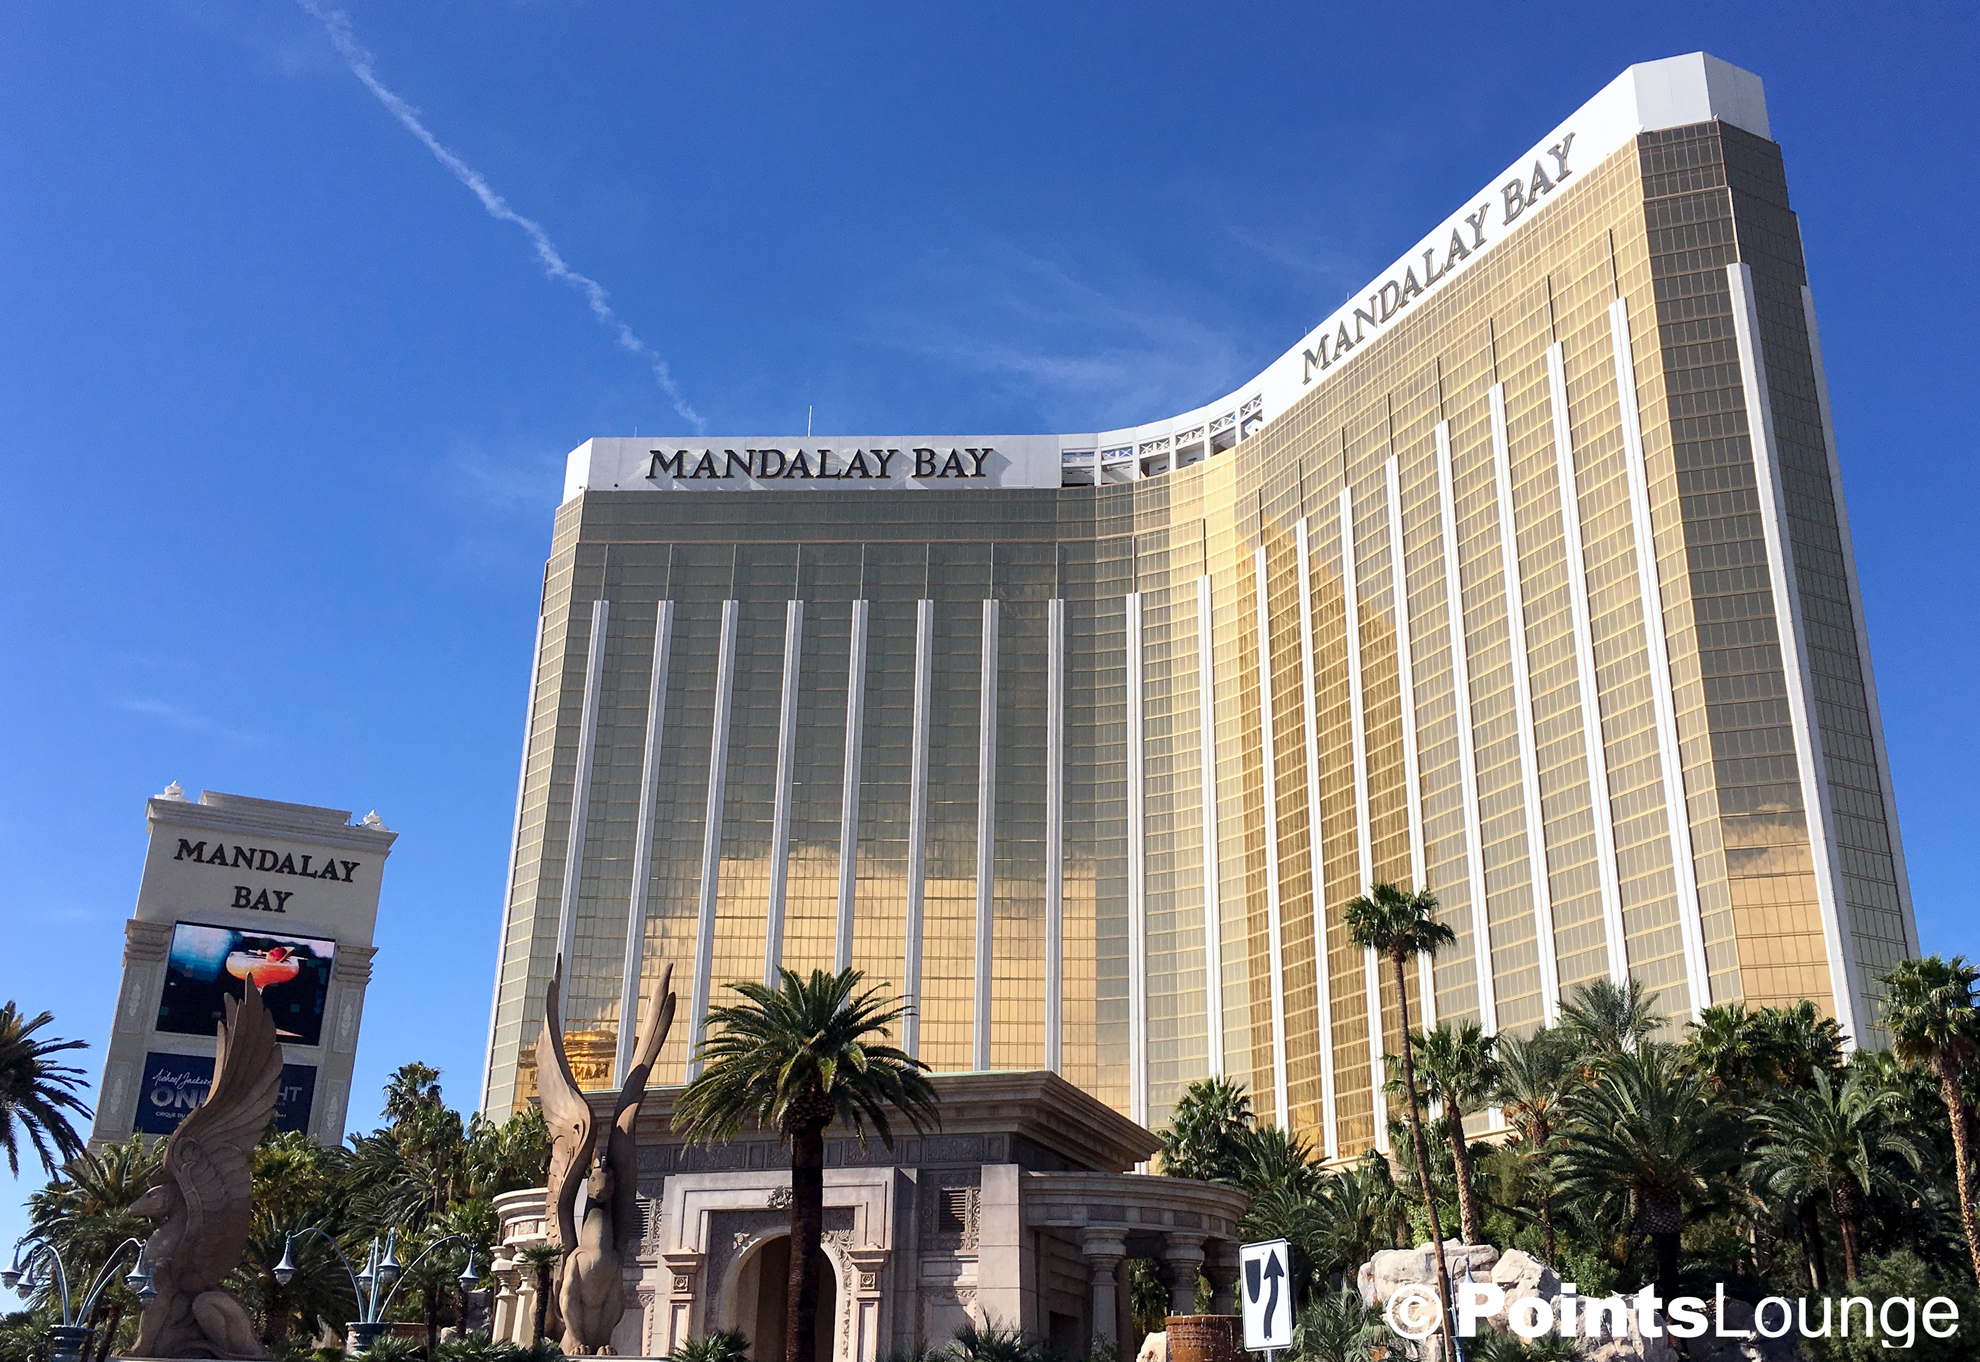 Mandalay Bay Las Vegas A Mlife Rewardgm Resorts Hotel And Resort